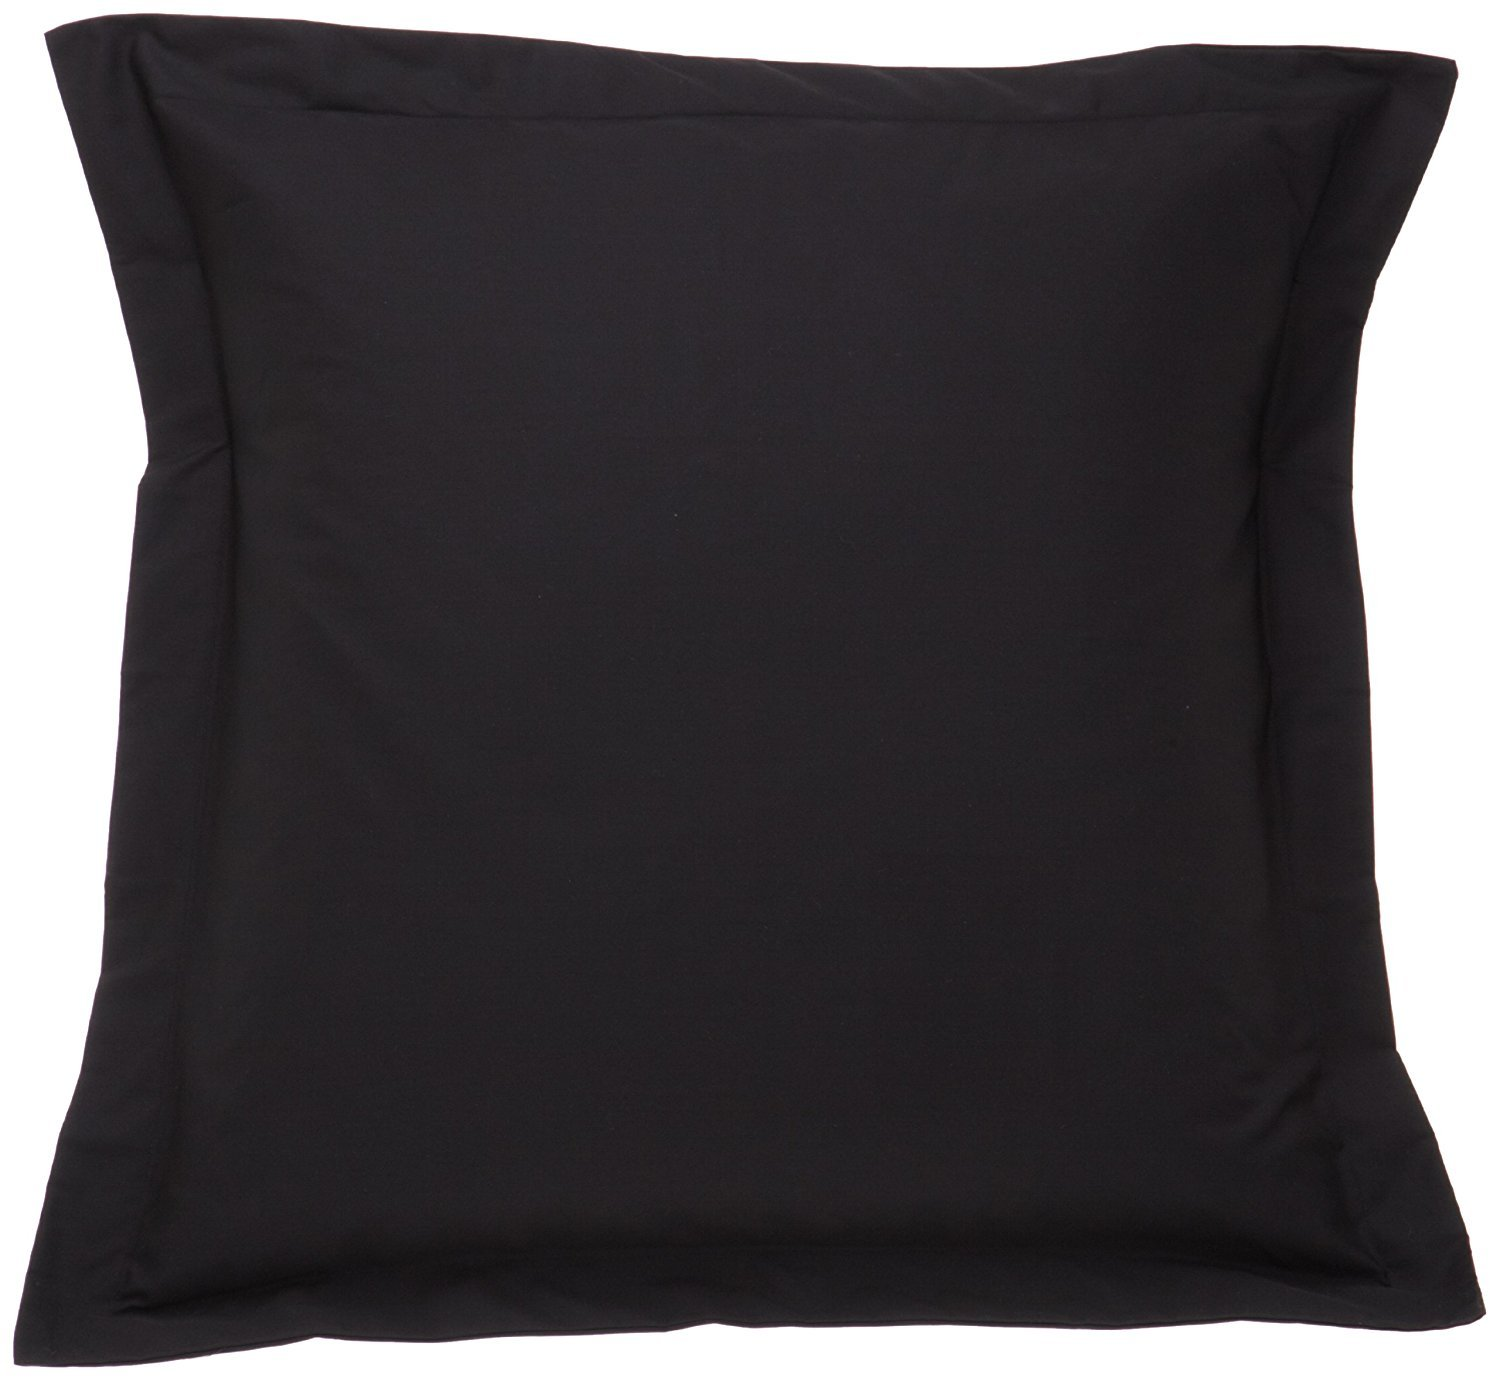 400 Thread Count Egyptian Cotton Pillow Shams Solid Euro/Square (28'' X 28'') Size (Pack of 2) by Precious Star Linen (Black)